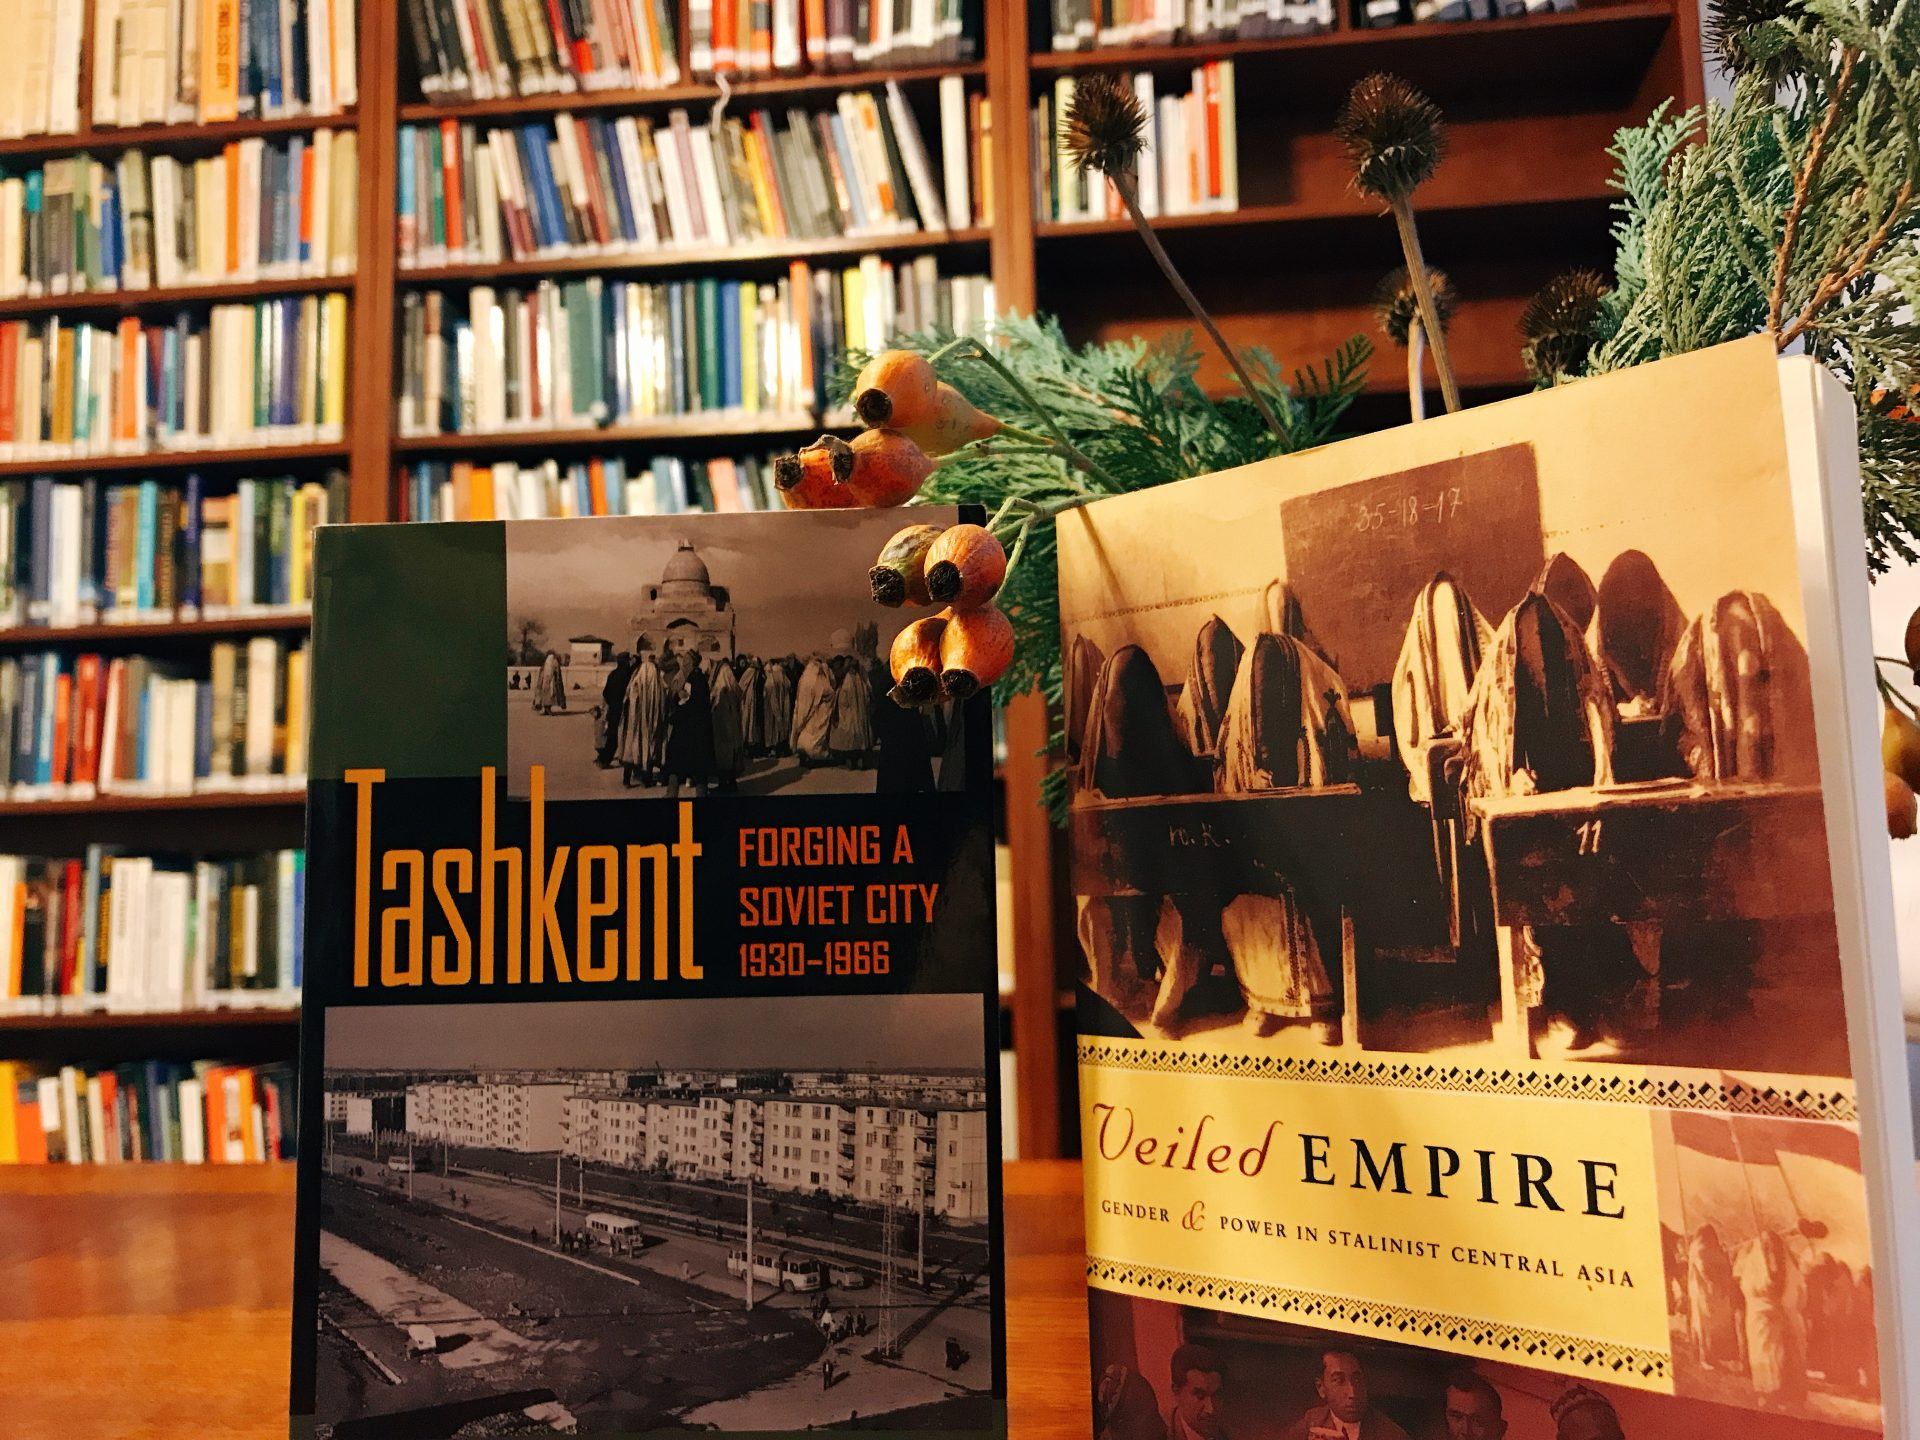 Books on Central Asia